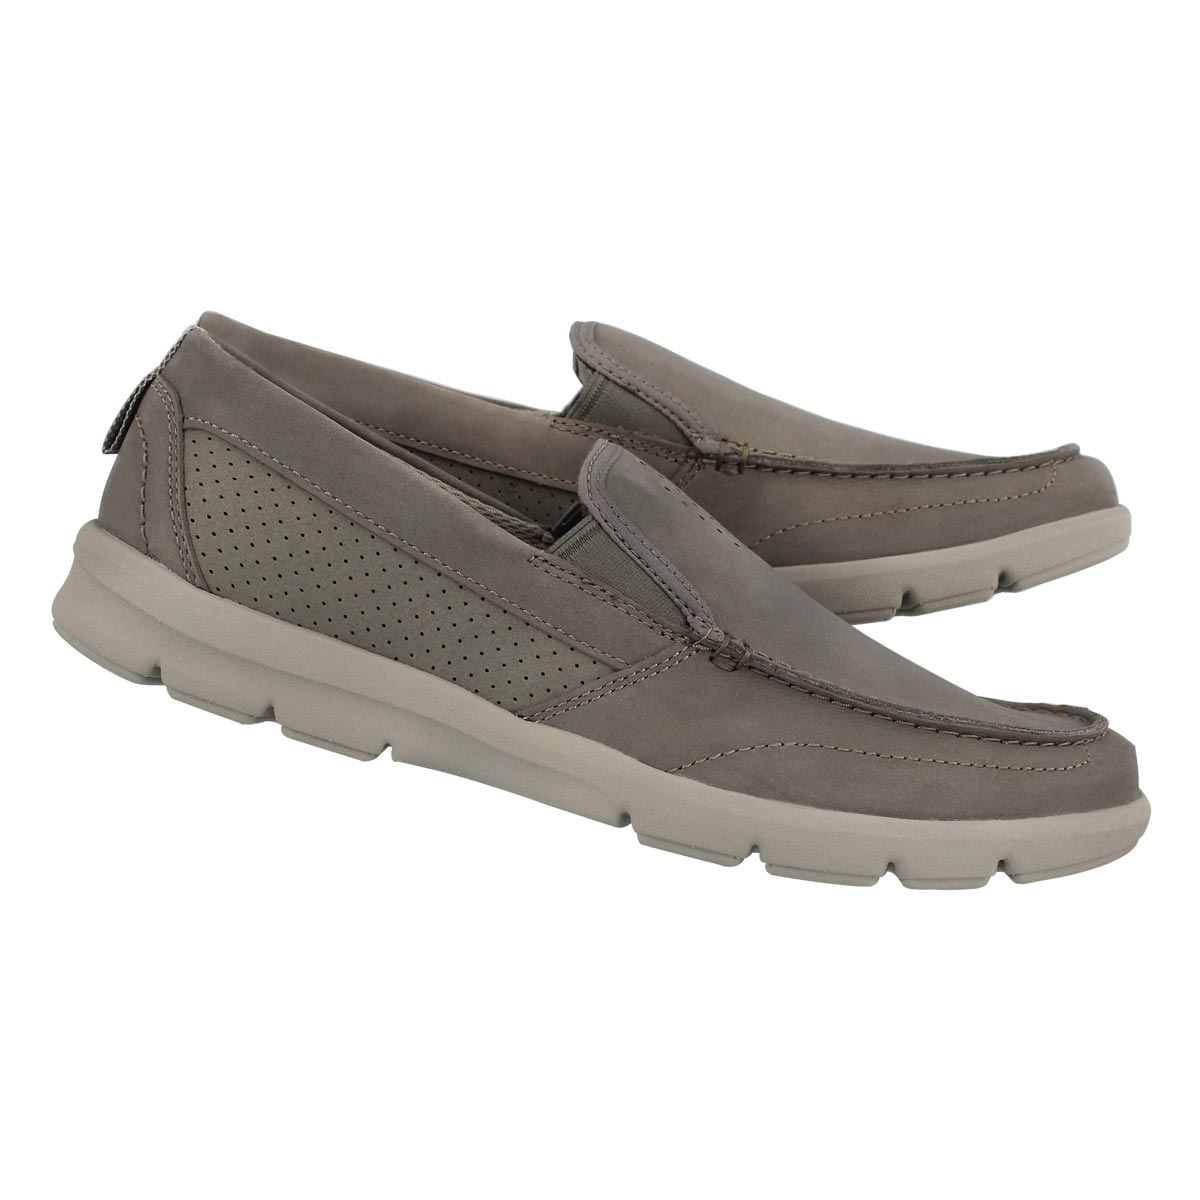 Mns Jarwin Race sage casual slip on shoe